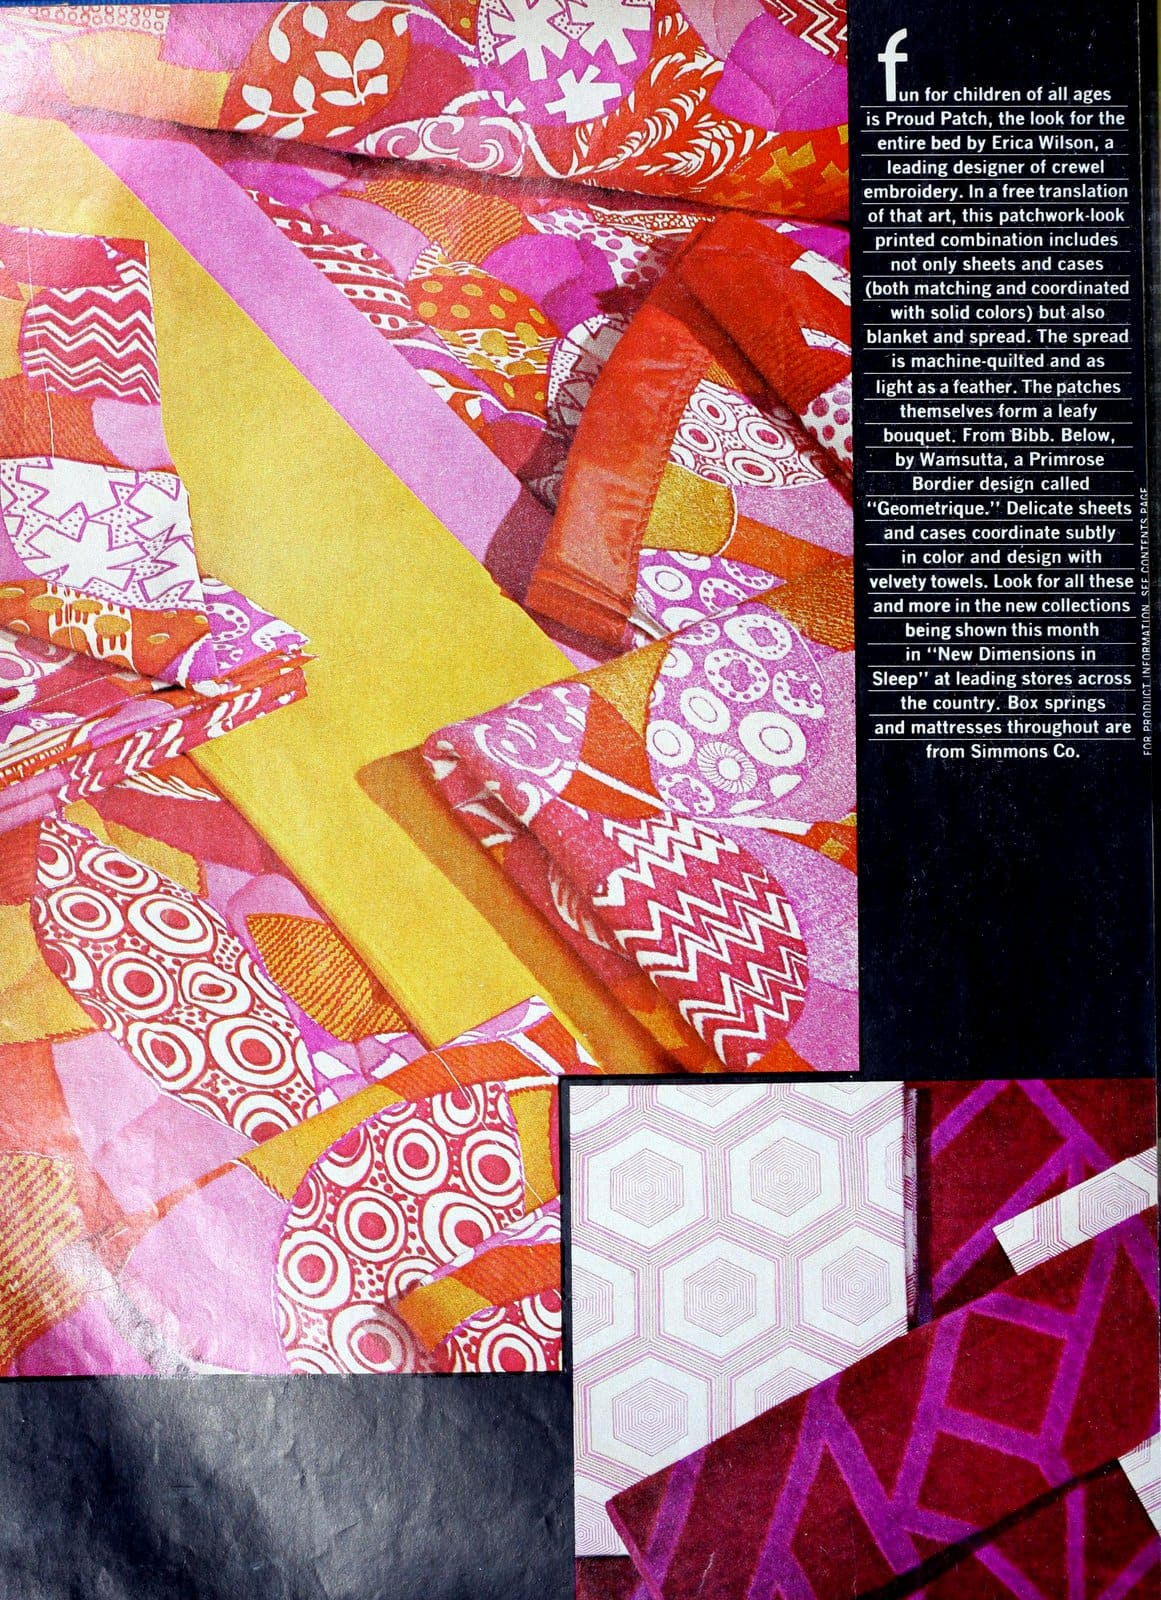 Vintage 1972 patchwork-look sheet sets and bedding with a retro geometric print